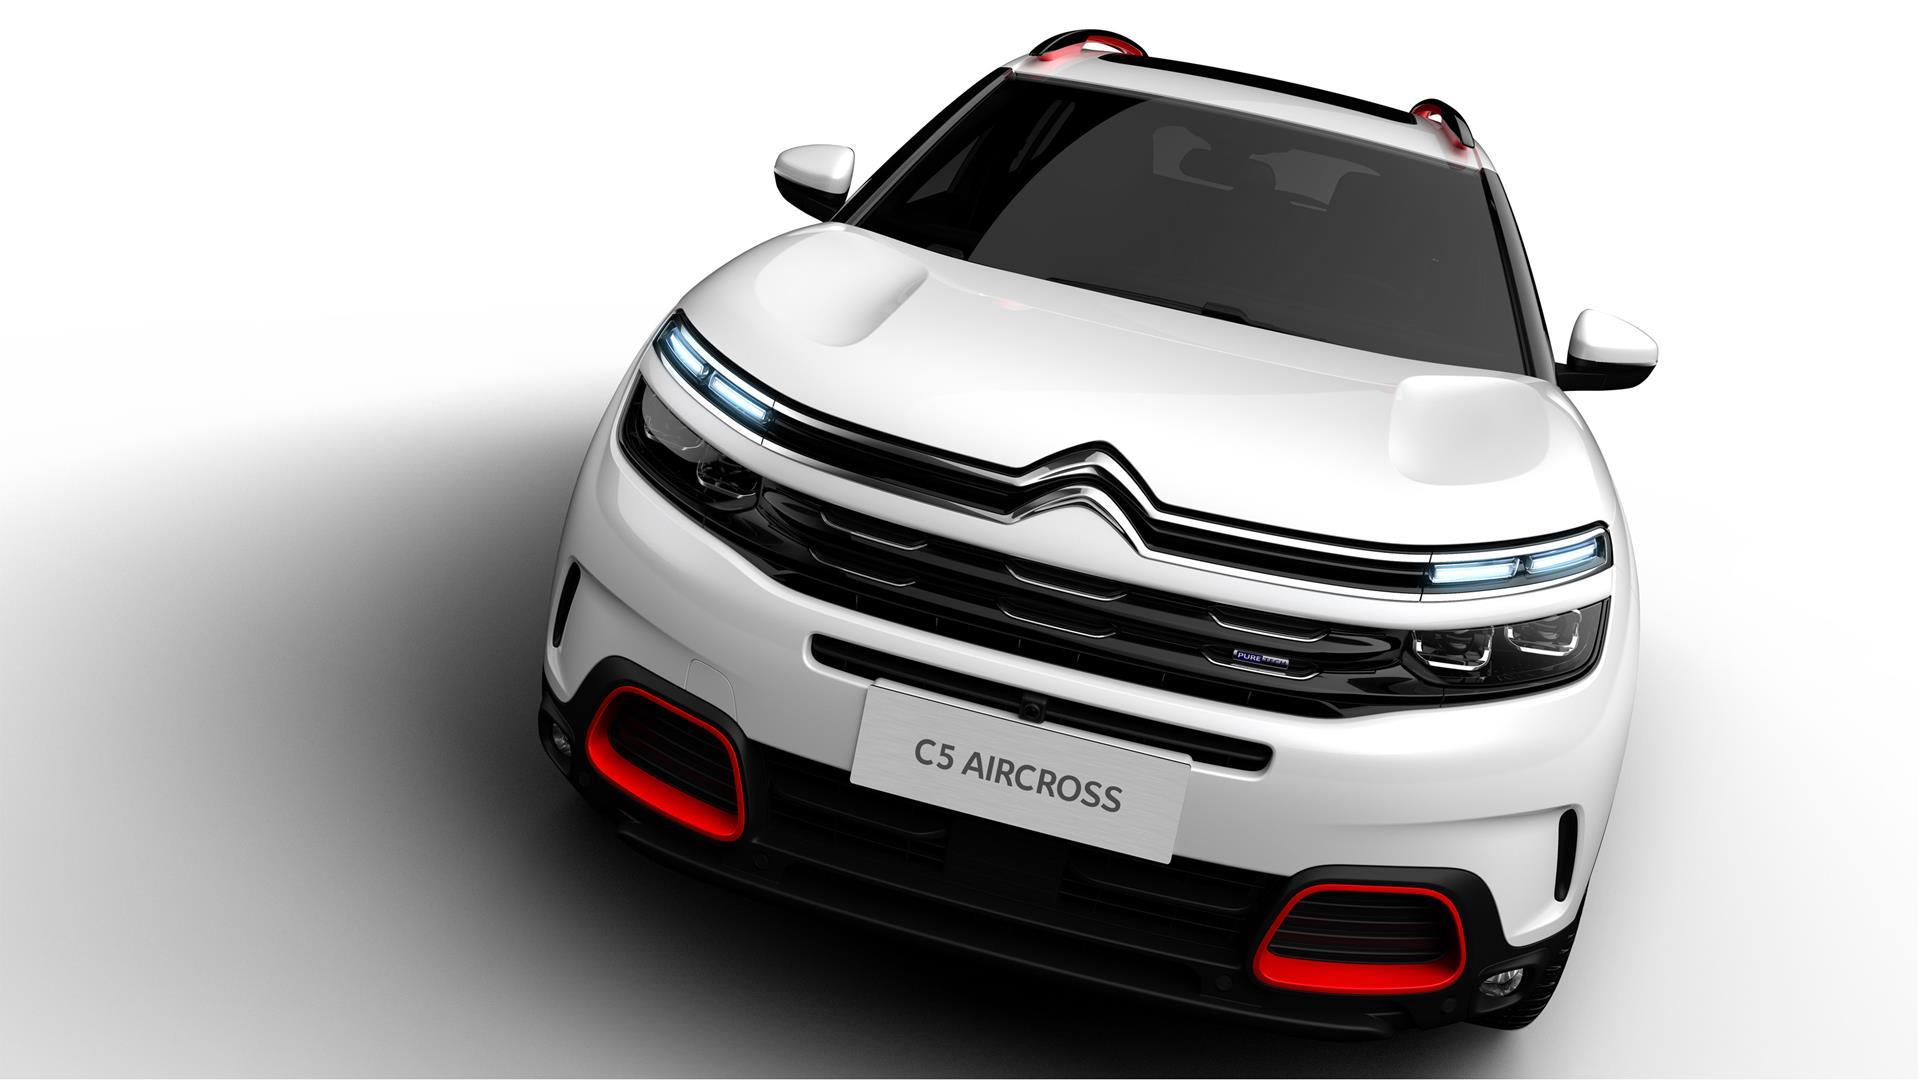 2017 citroen c5 aircross wallpaper and image gallery. Black Bedroom Furniture Sets. Home Design Ideas